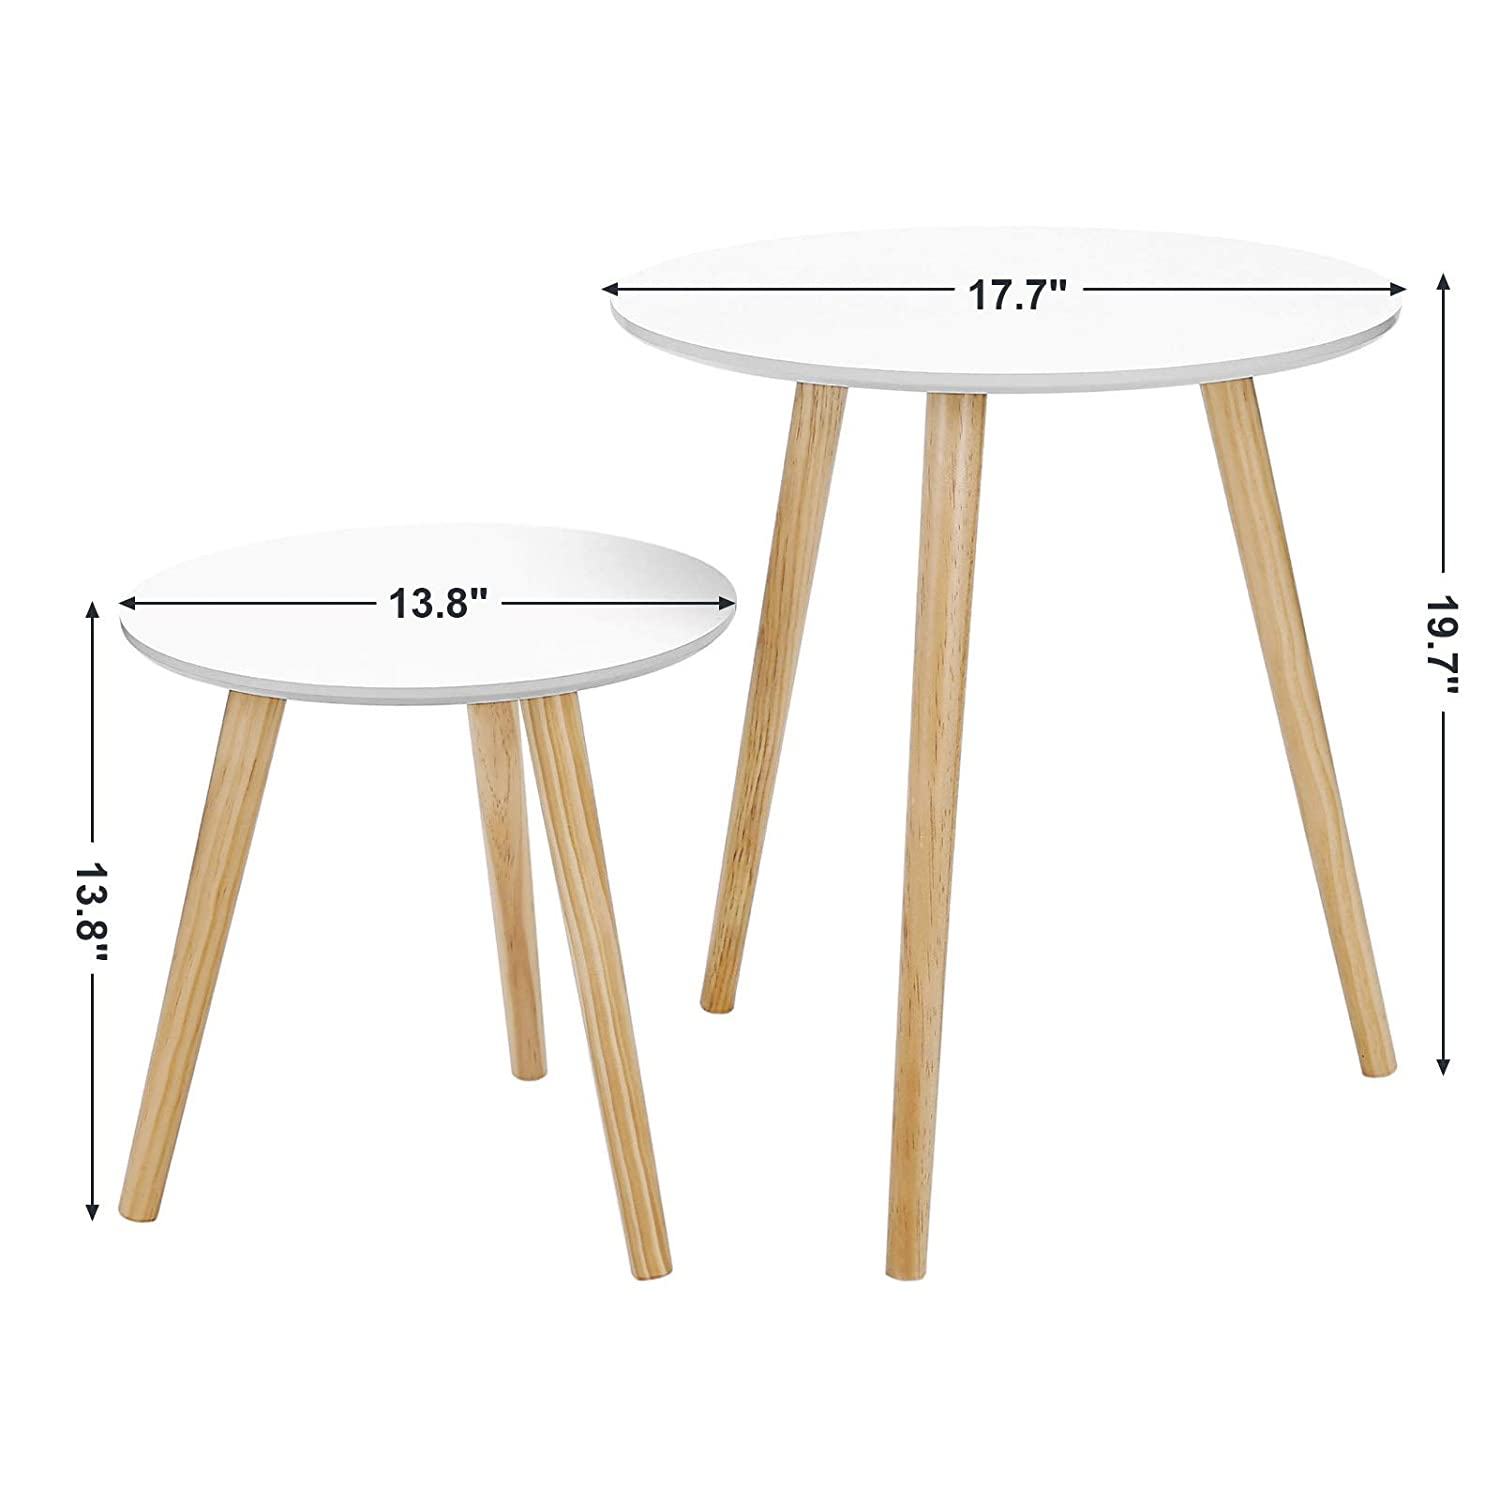 Songmics nesting tables round coffee end tables night stand modern minimalist multi purpose daffodil series accent furniture for living room bedroom kids